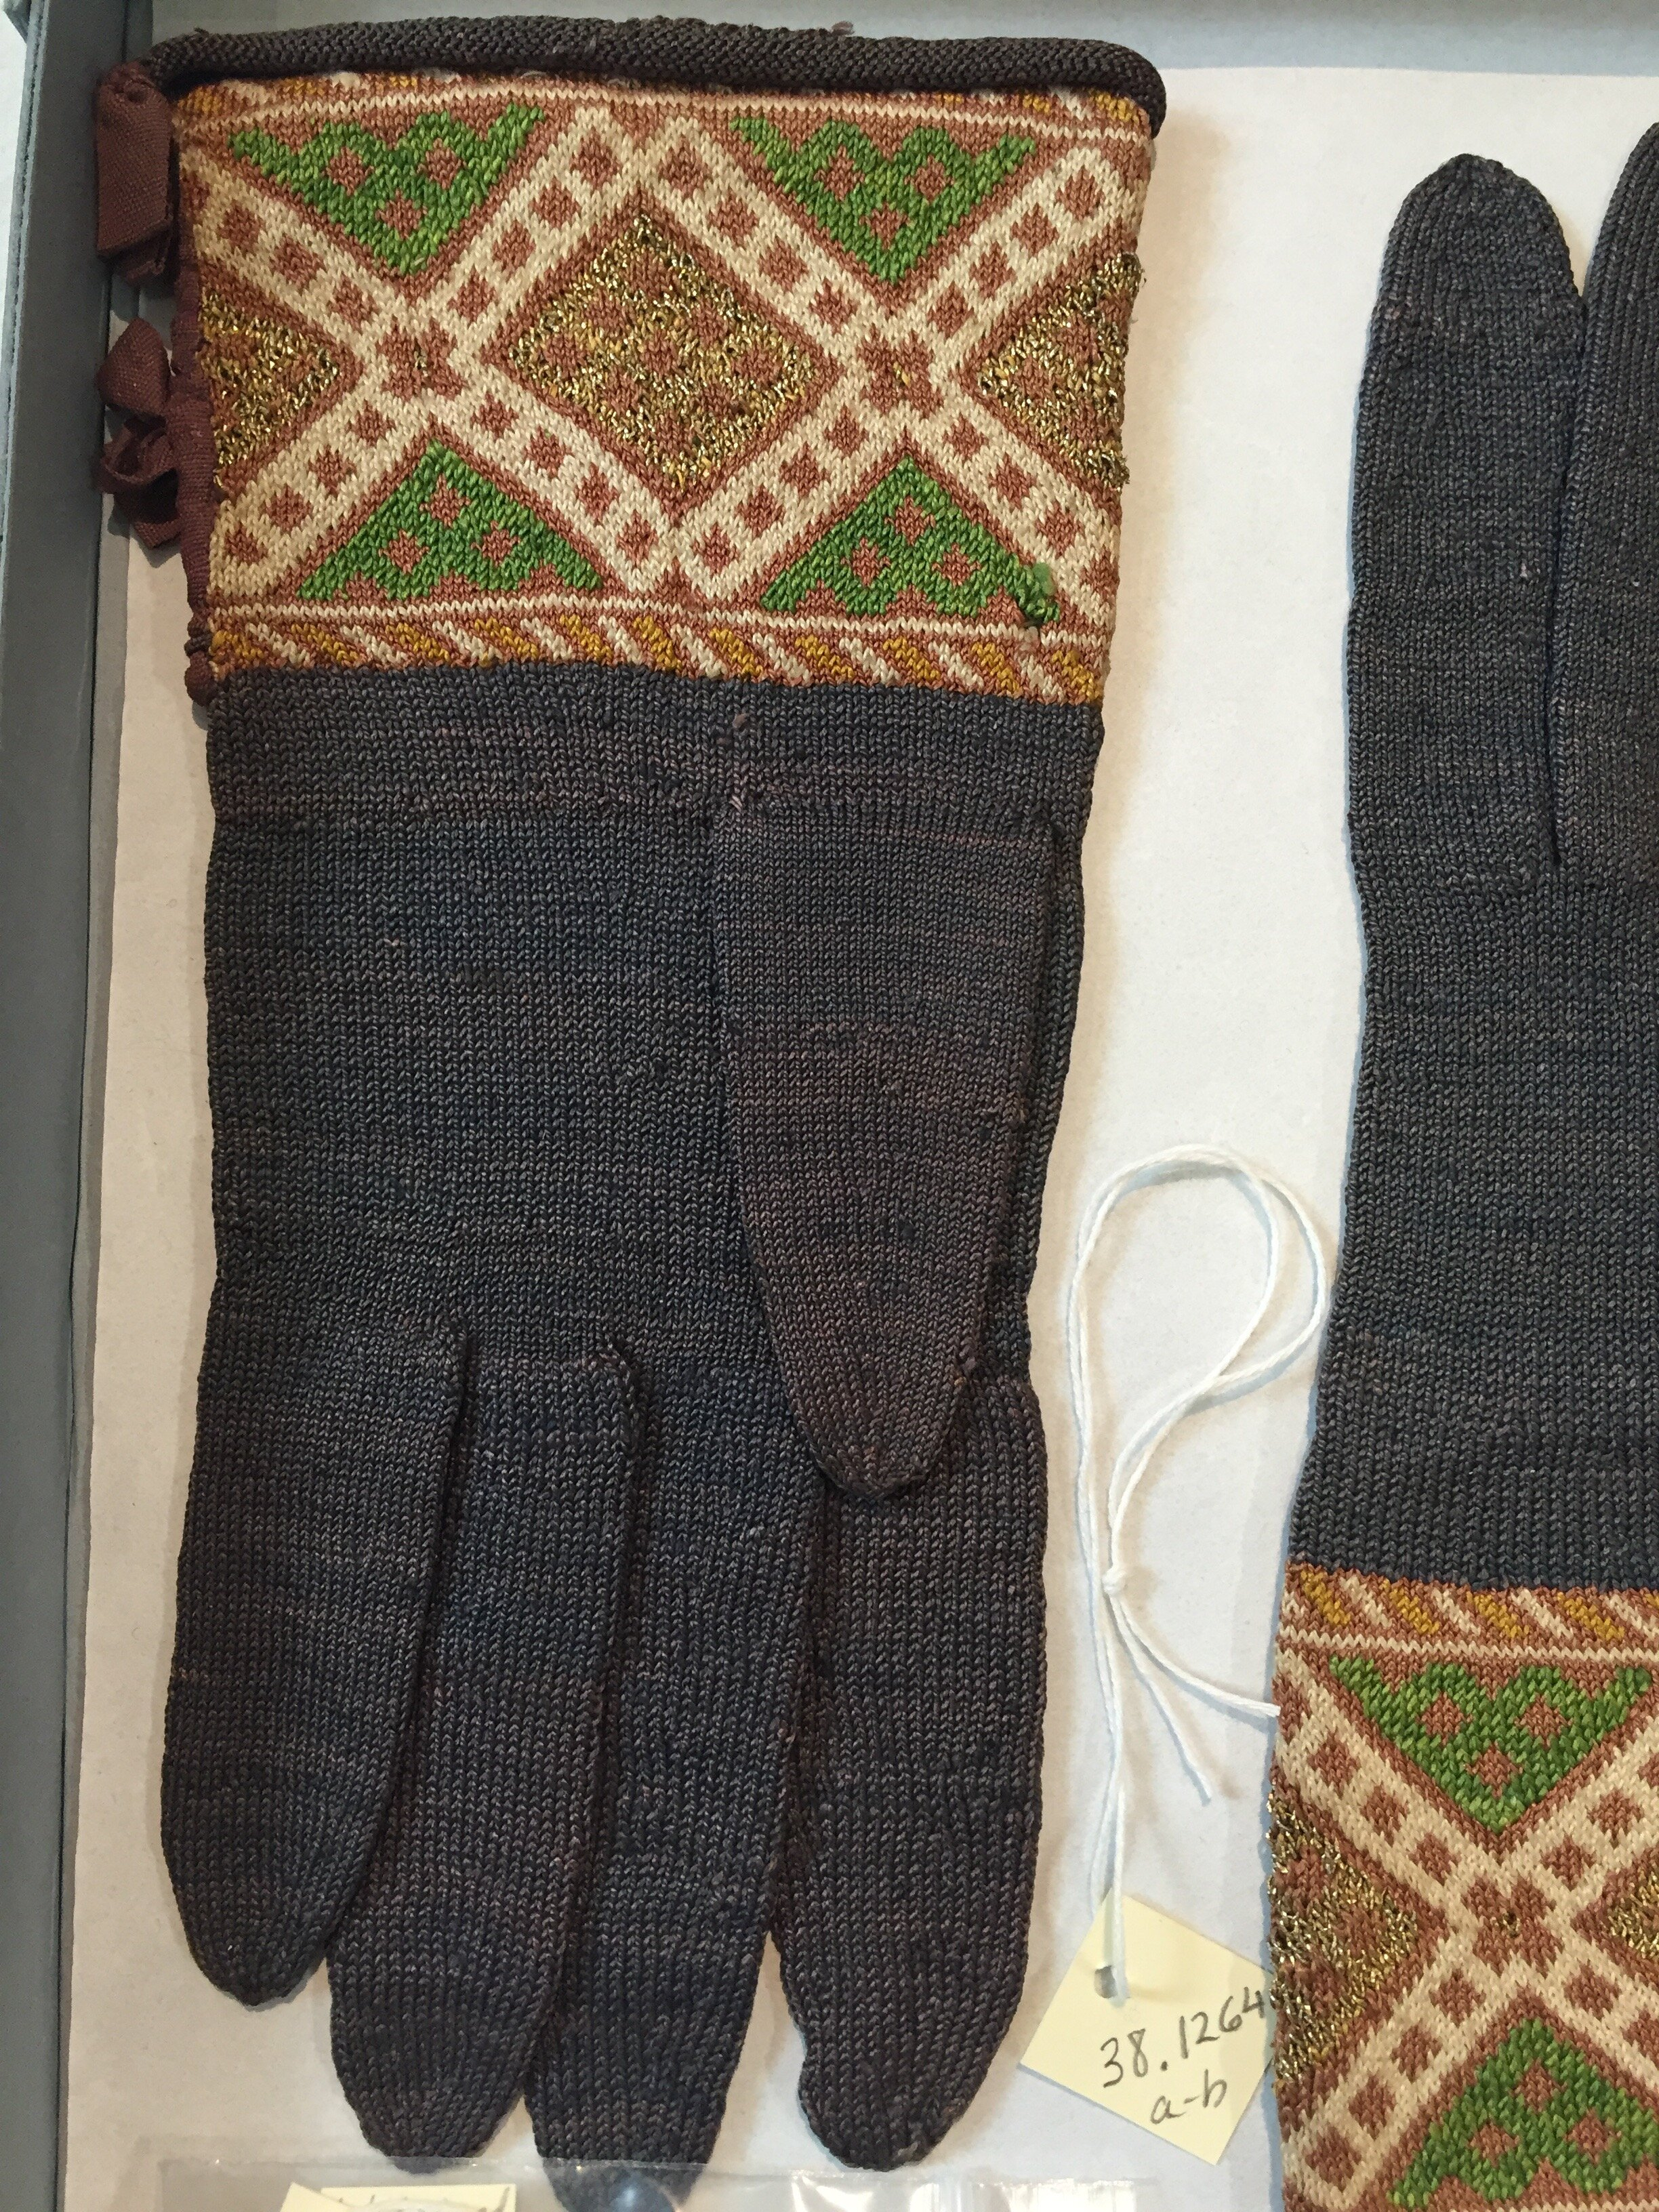 A pair of silk and metallic gloves in the Boston Museum of Fine Arts, Mid-17th century. In the cuff, there are a minimum of 3 colors used at a time with an additional 4th color periodically.